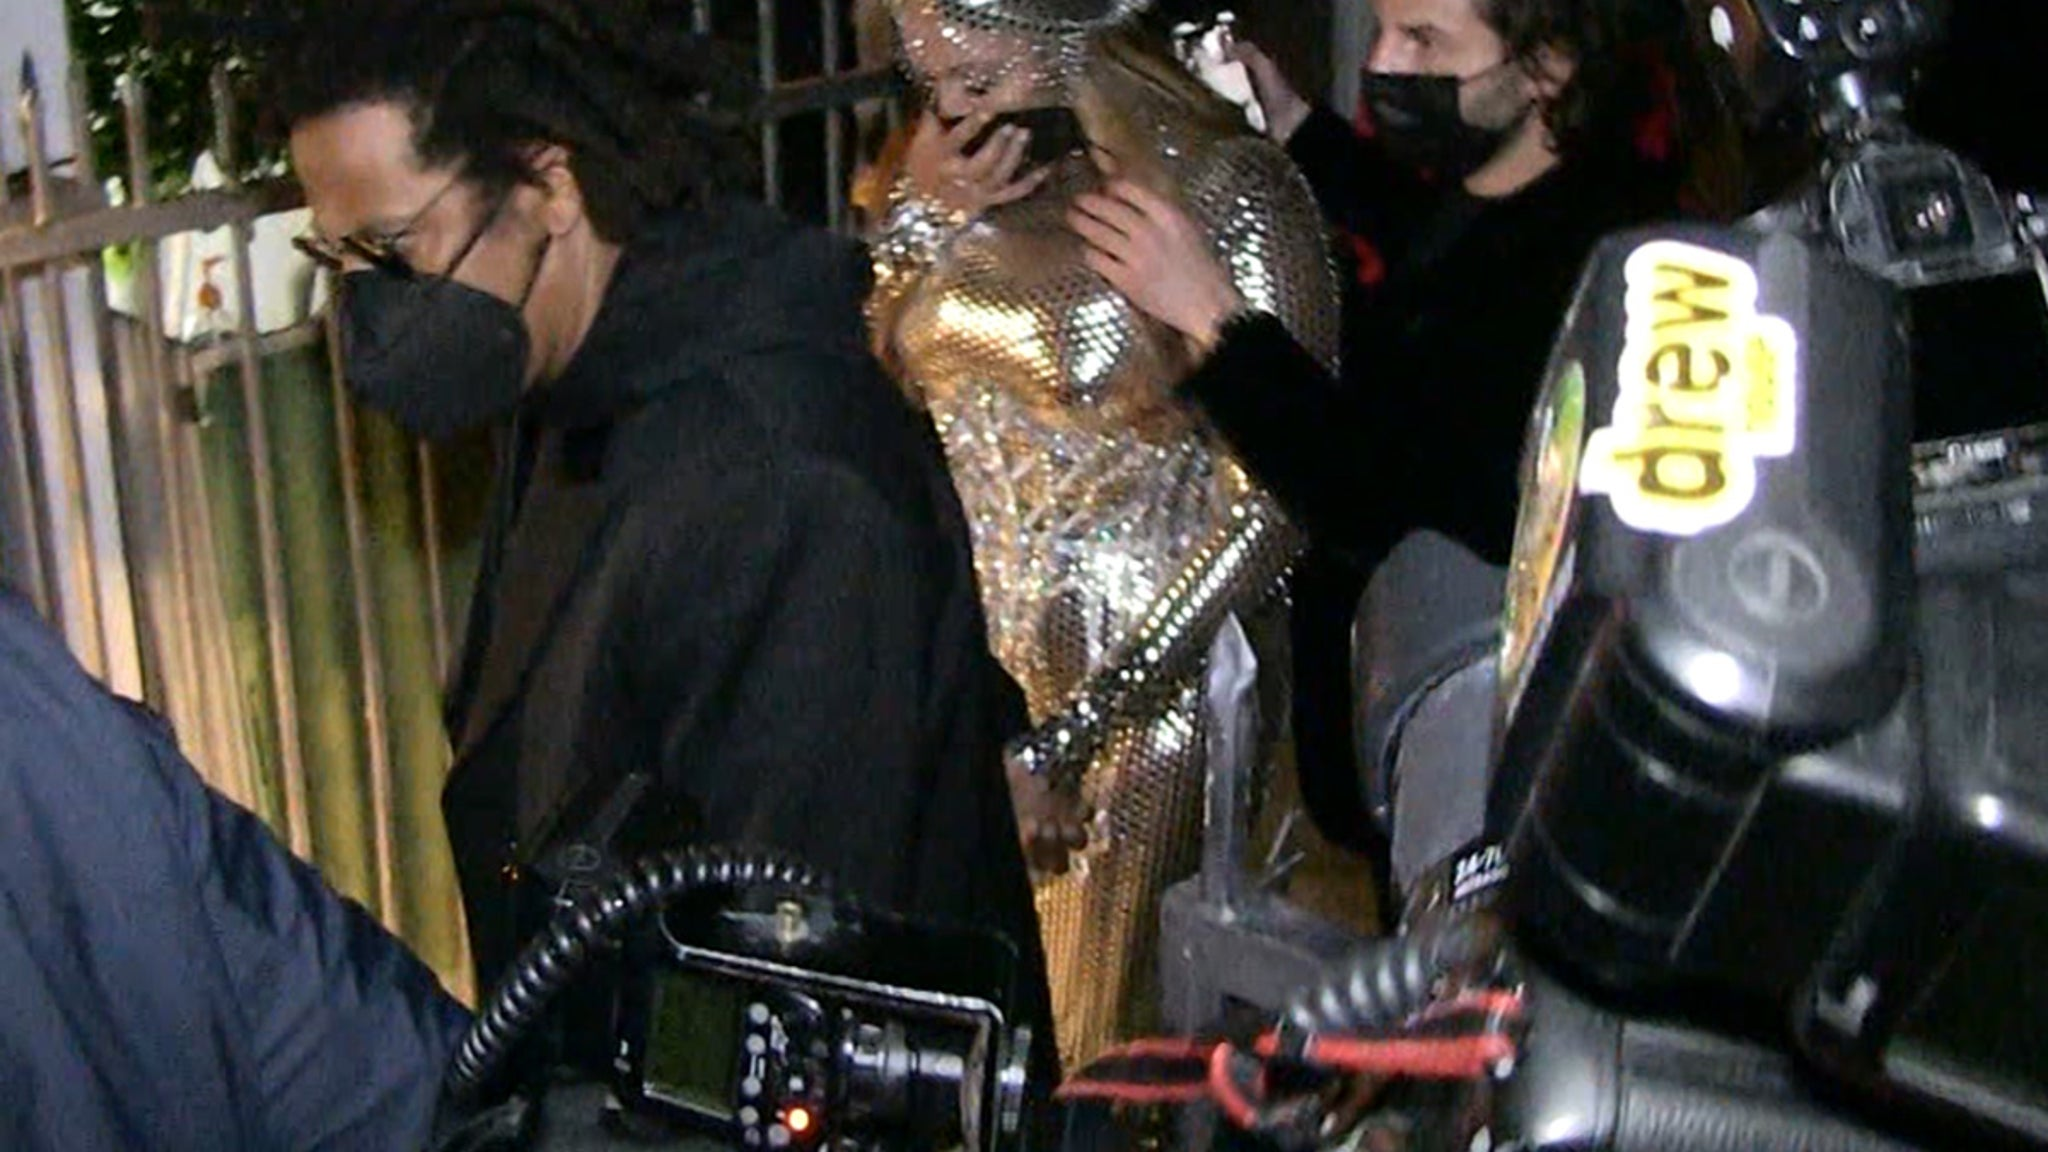 Beyonce & Jay-Z Swarmed at Grammys After-Party After Her Historic Night